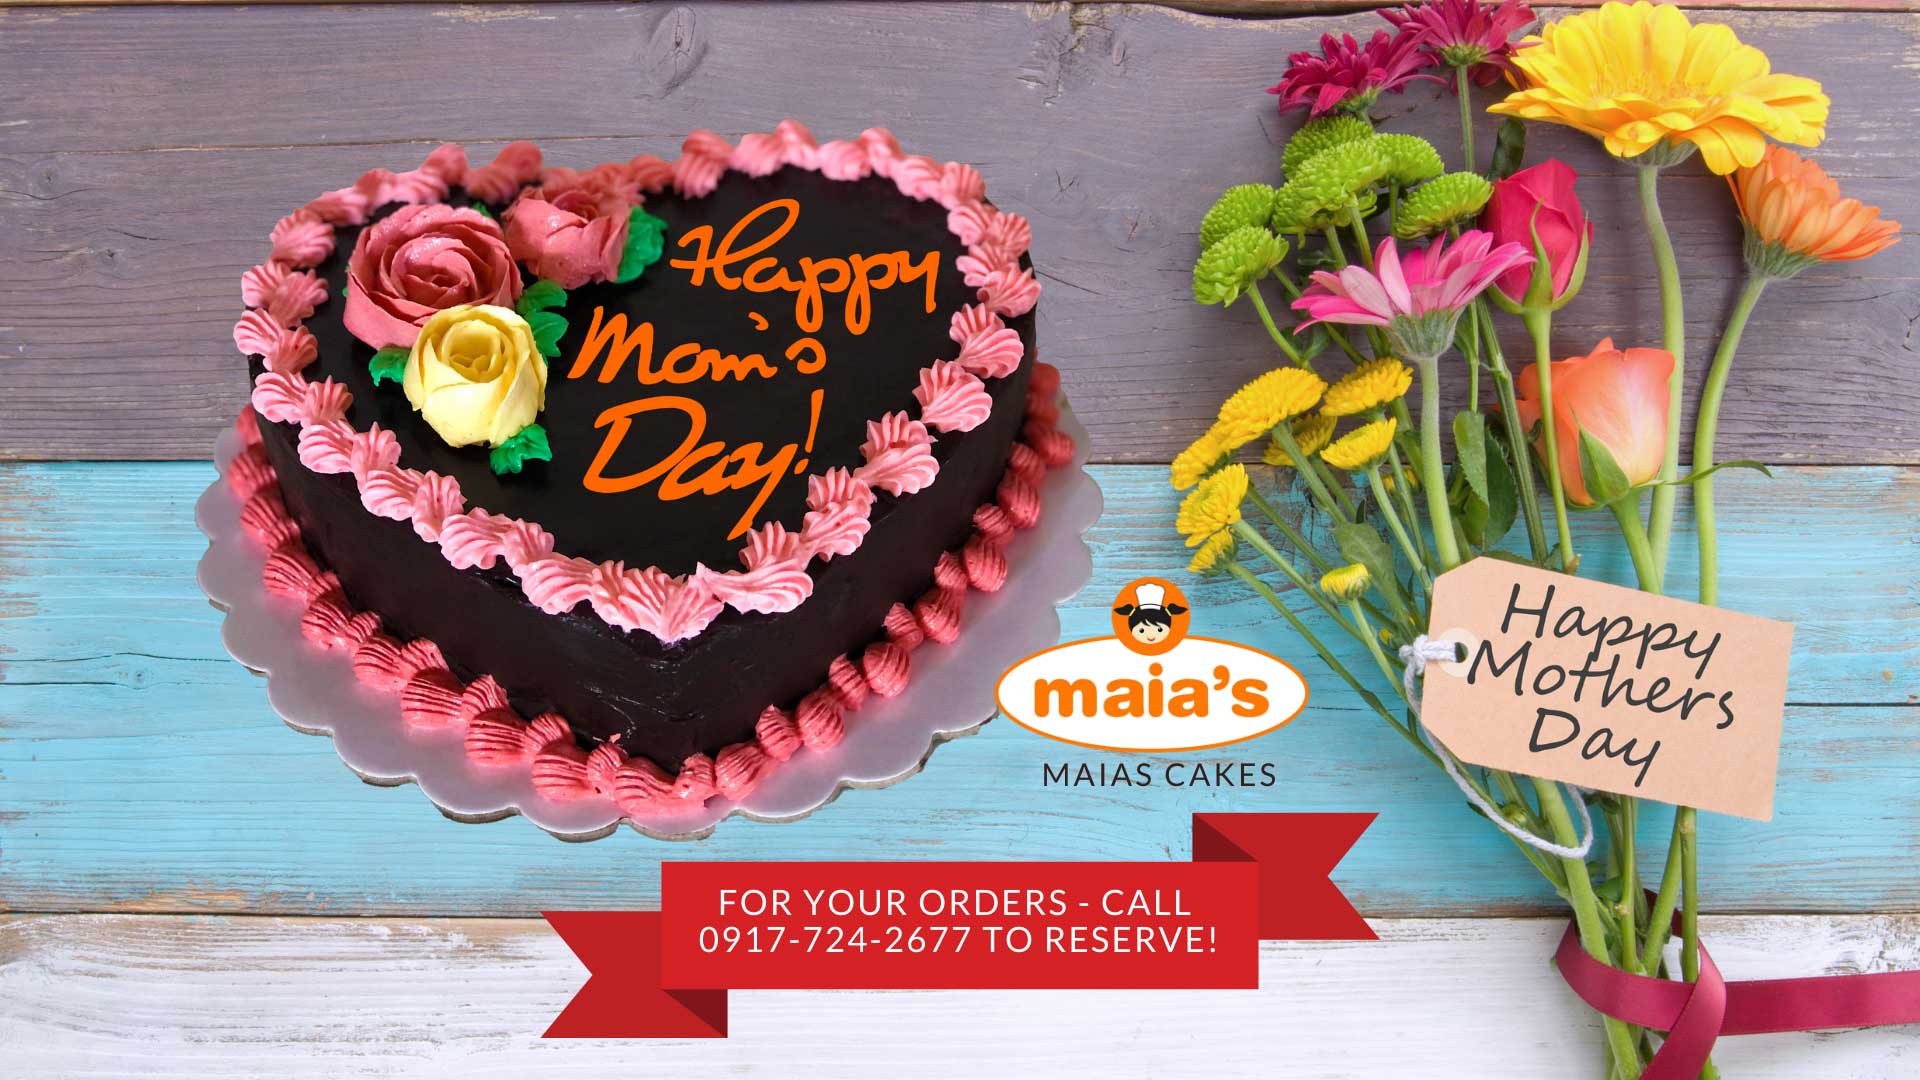 Happy Mother's Day Cake by Maia's Cakes